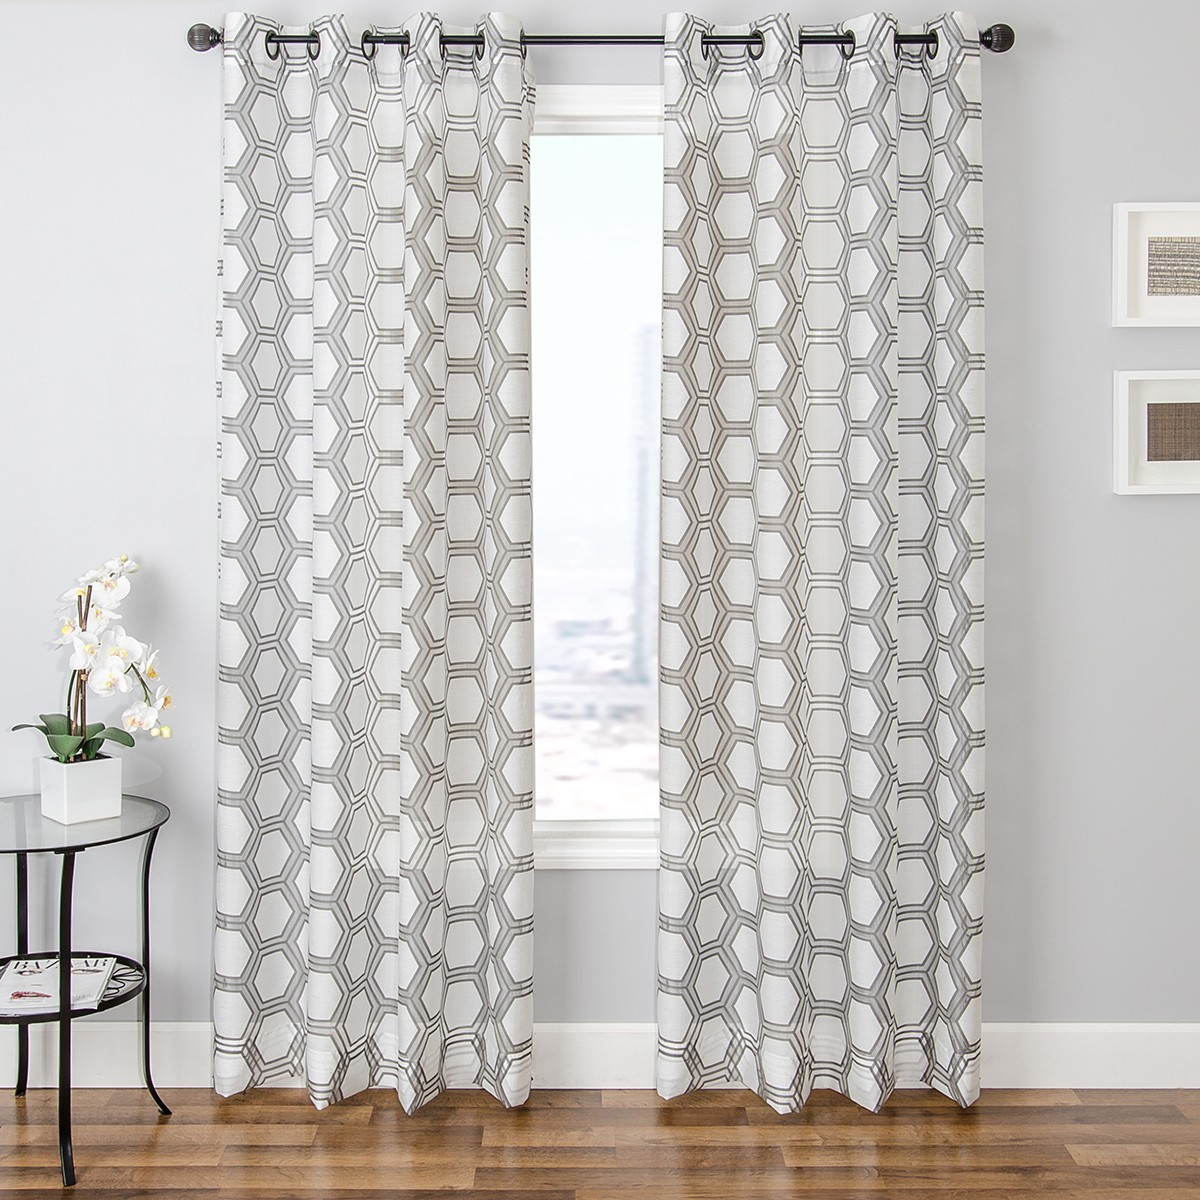 Grey And Tan Curtains Transparent Black and Whi